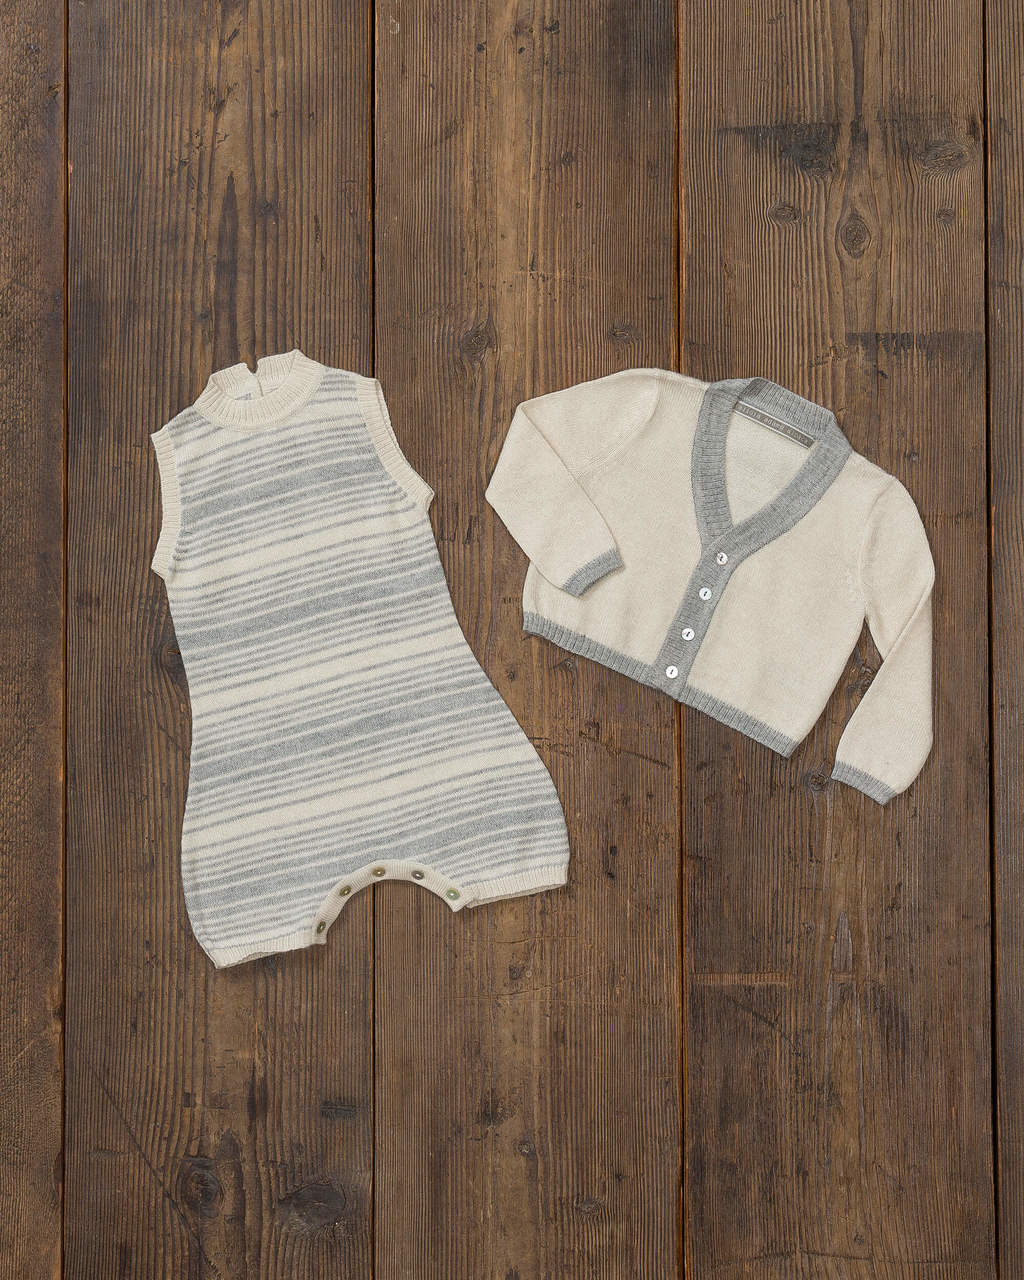 Alicia Adams Alpaca Samie Onesie and Cardigan set, ultimate gift for baby and mommy, baby alpaca onesie, light grey and ivory baby alpaca clothing set